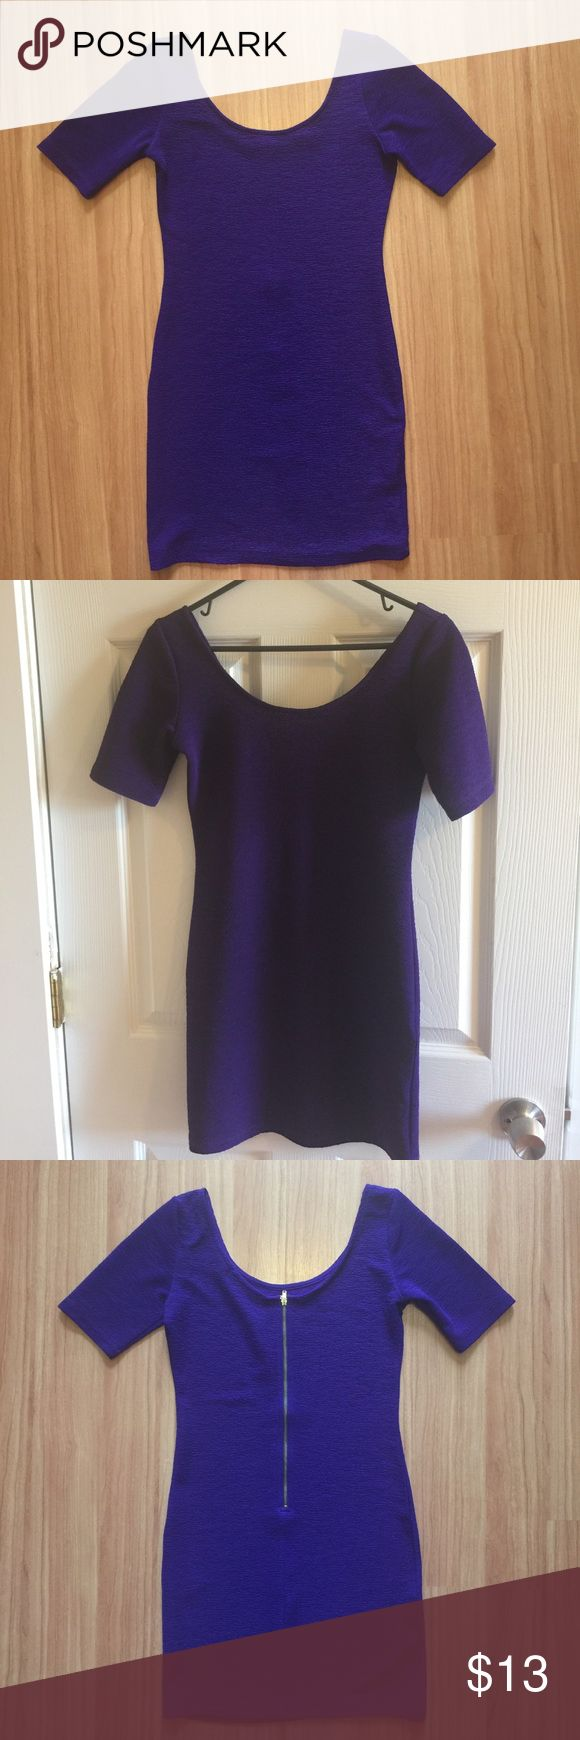 Purple Bodycon Dress With Gold Zipper On Back SM Absolutely stunning purple Bodycon dress from Forever 21. Beautiful textured rich purple fabric. This dress is smokin' on and perfect for a night out. Great condition! Forever 21 Dresses Mini